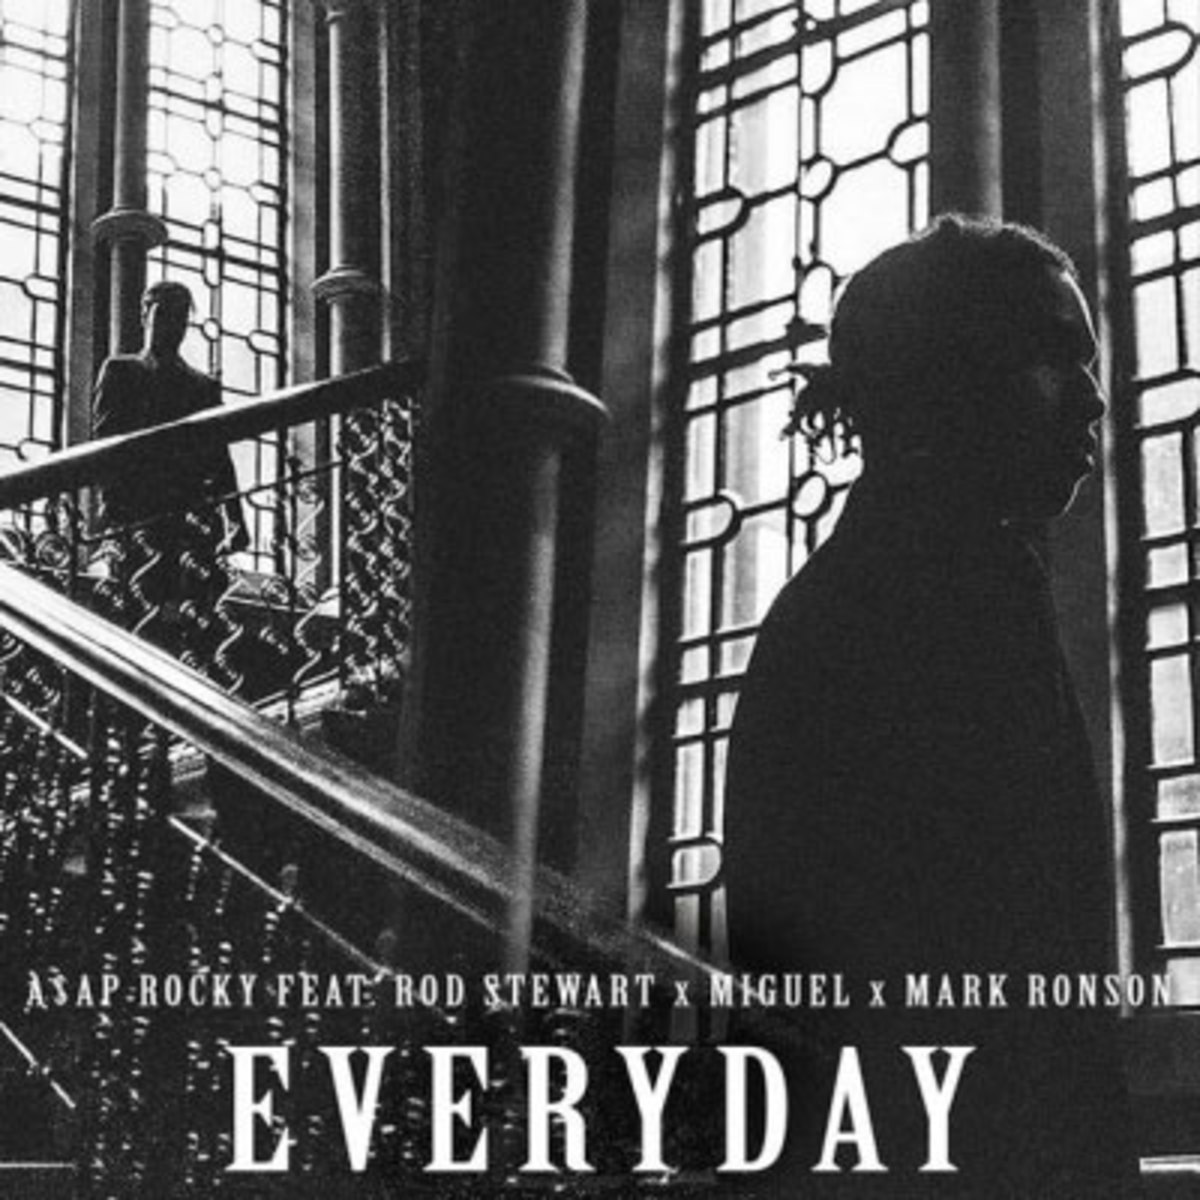 asap-rocky-everyday.jpg